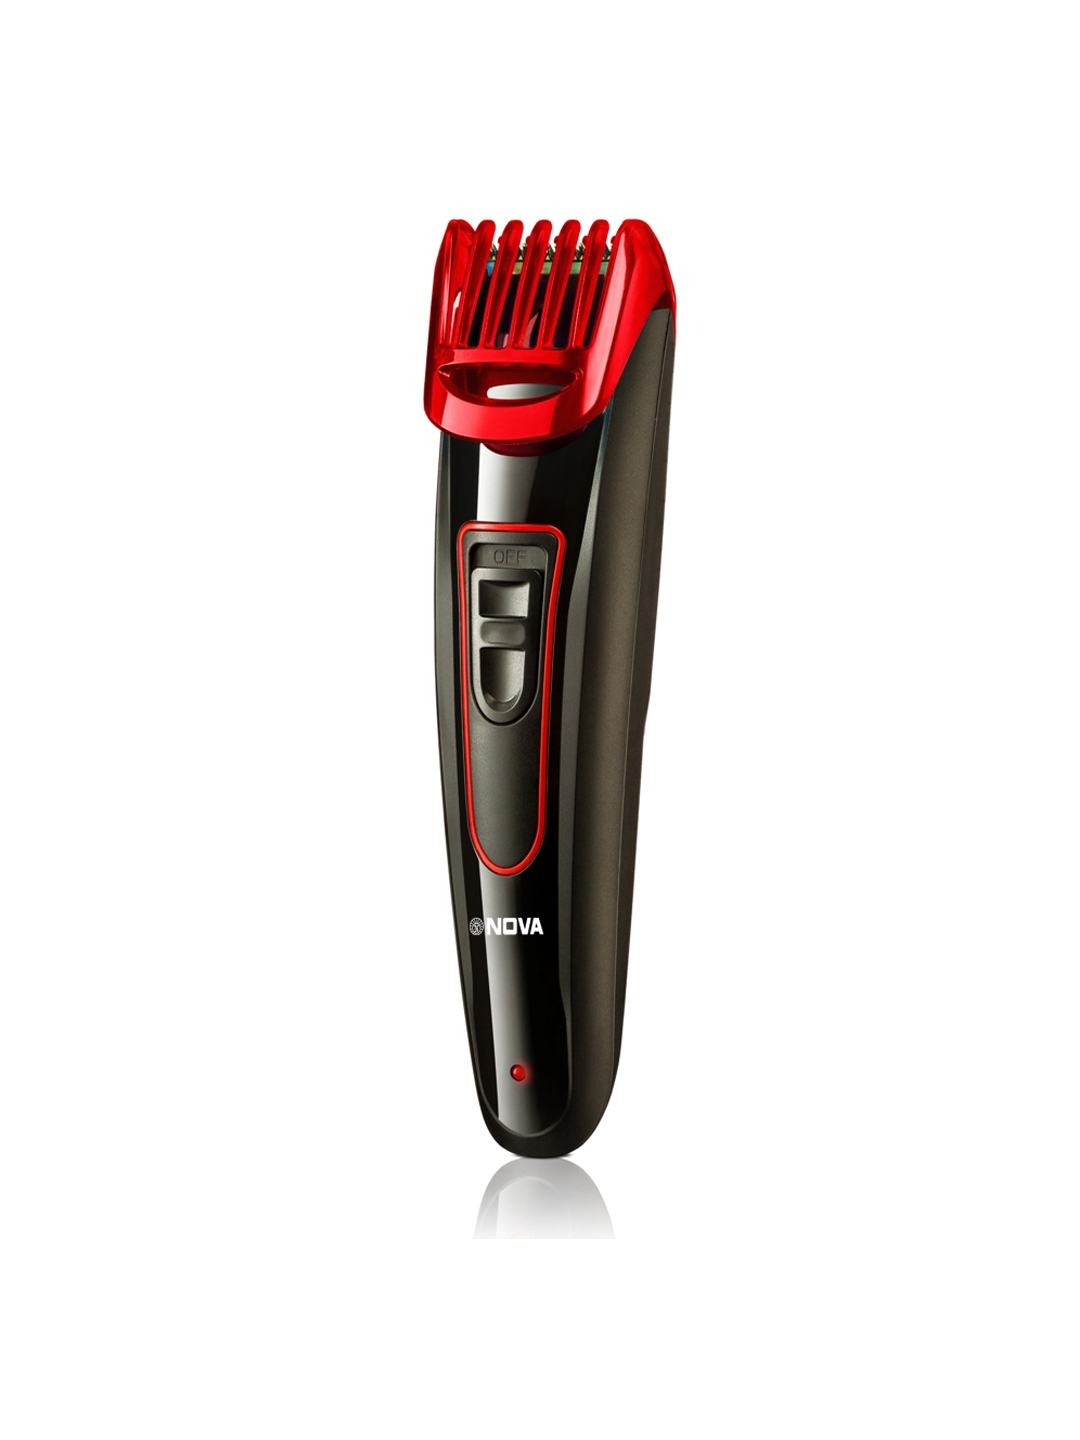 NOVA Men NHT 1072 Fast Charge Titanium Coated USB Cordless Trimmer   Red   Black